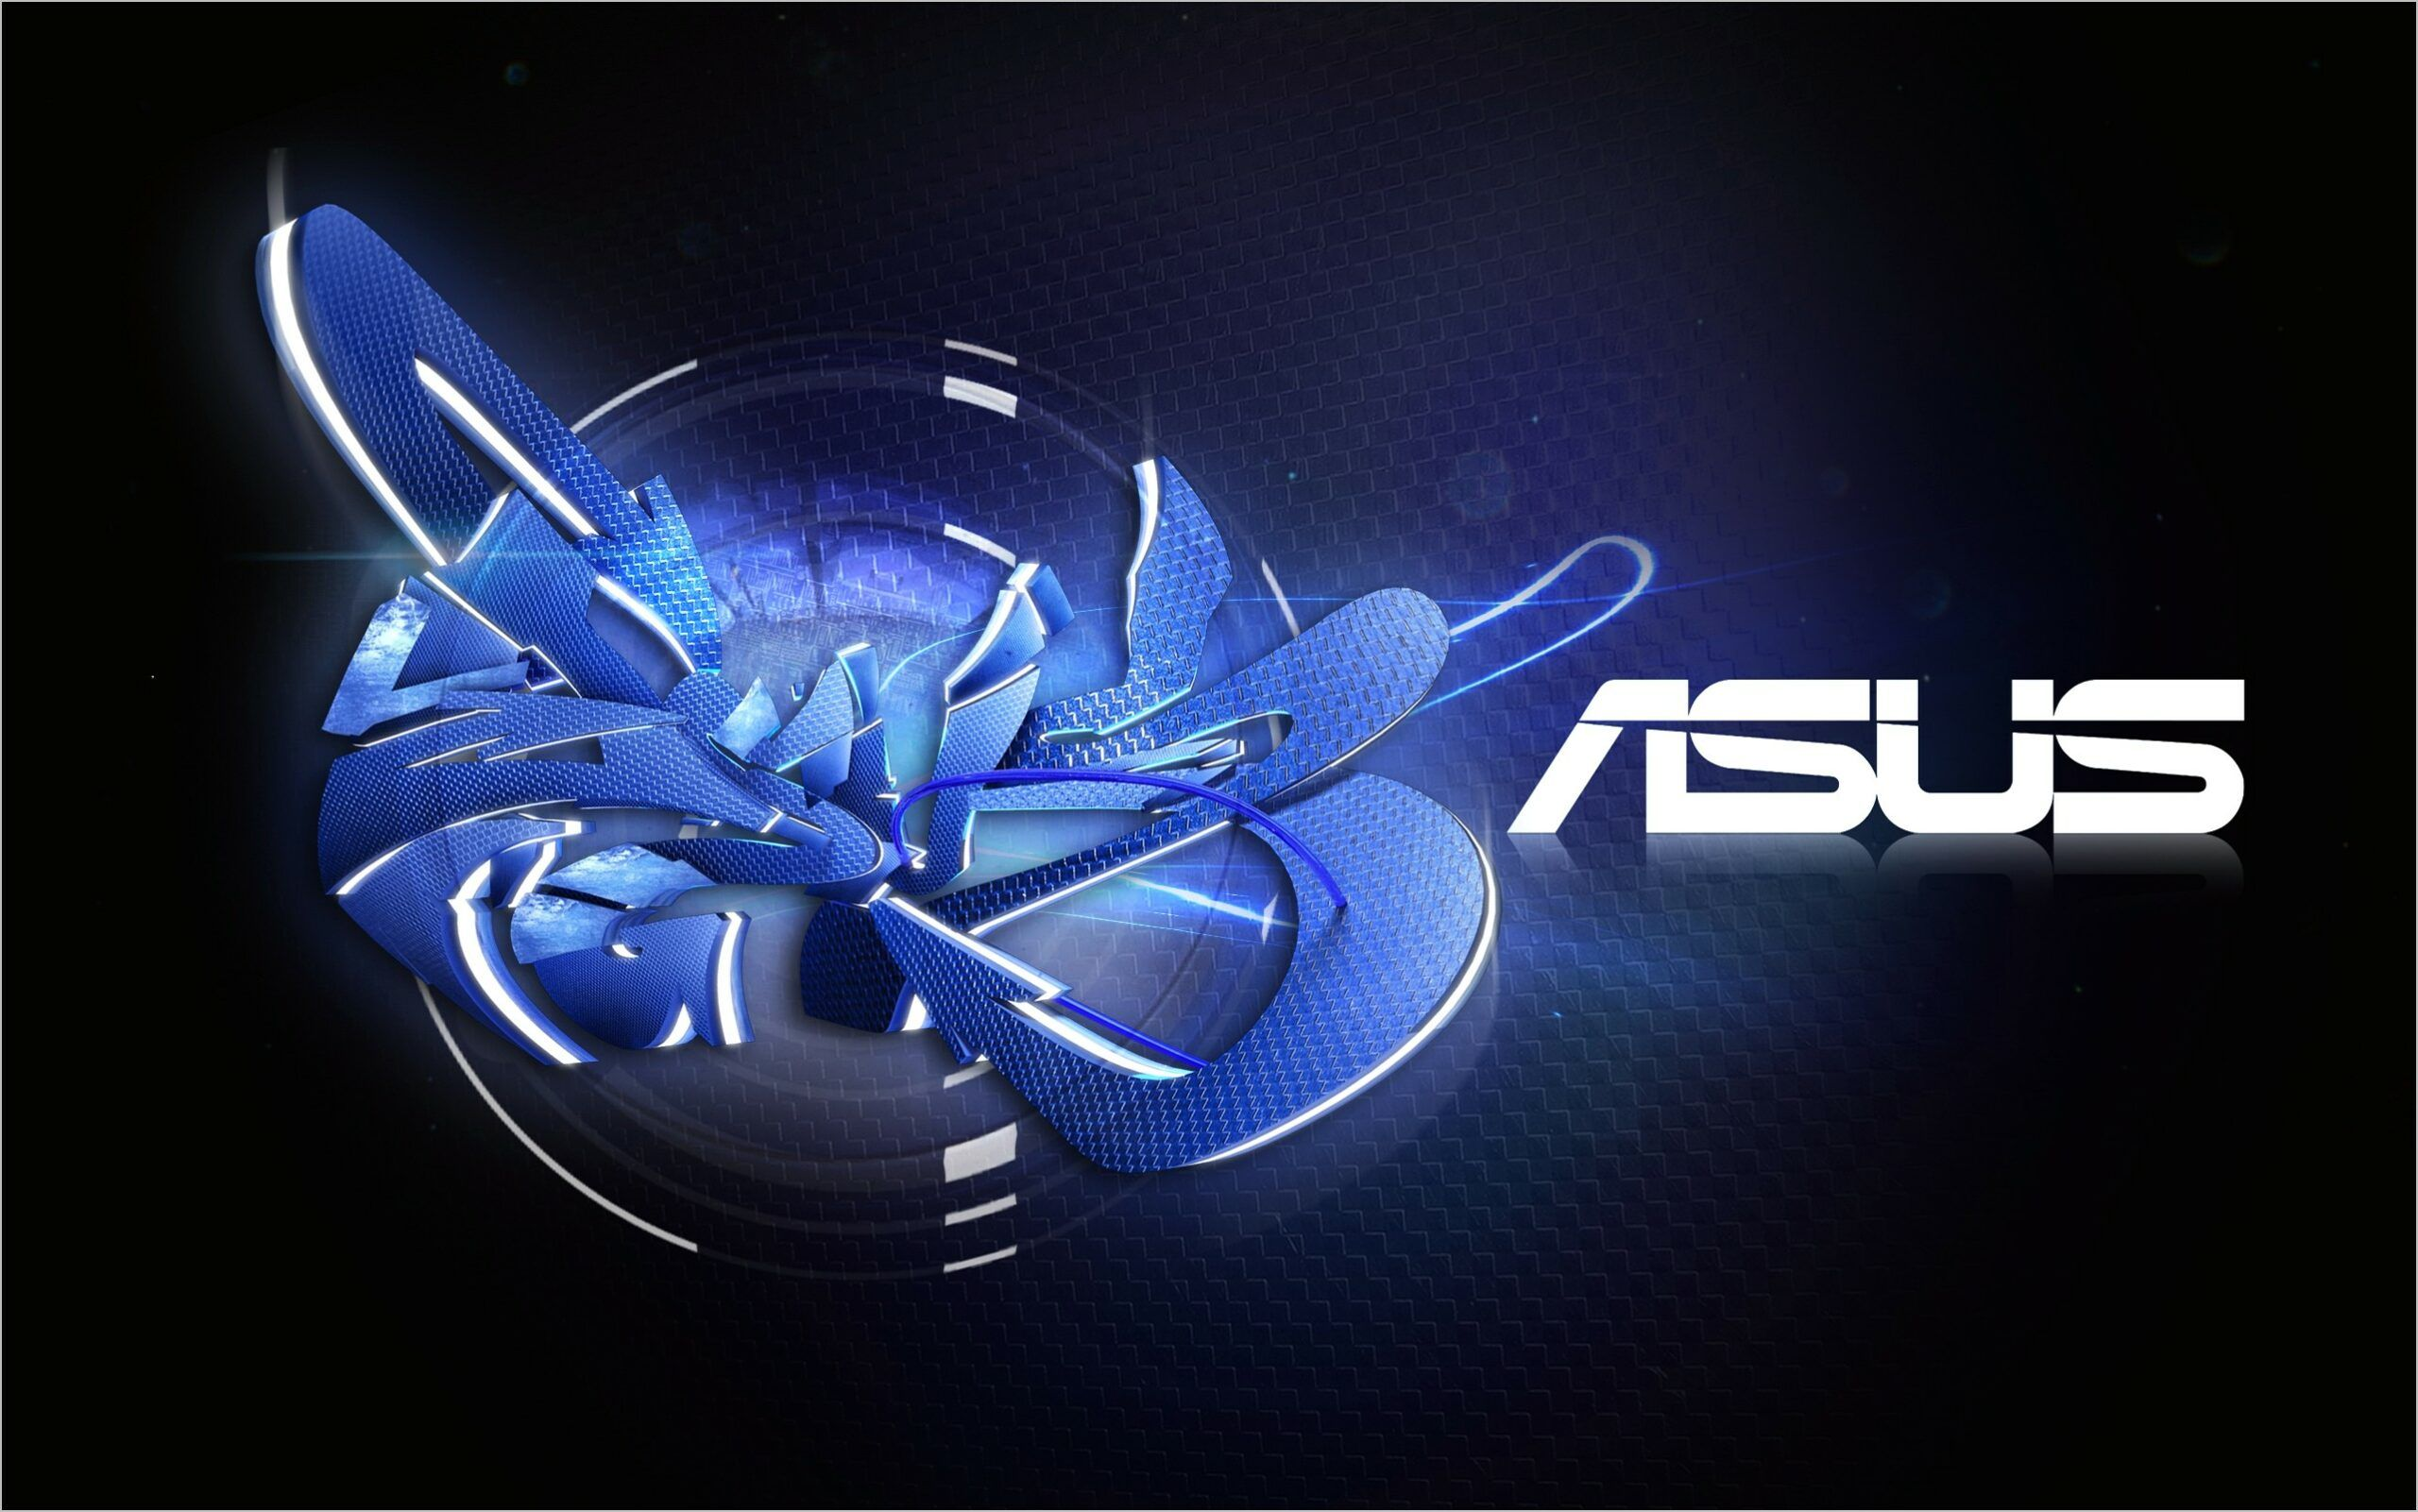 Asus Wallpaper 4k Mobile In 2020 Black And Blue Wallpaper Hi Tech Wallpaper Asus